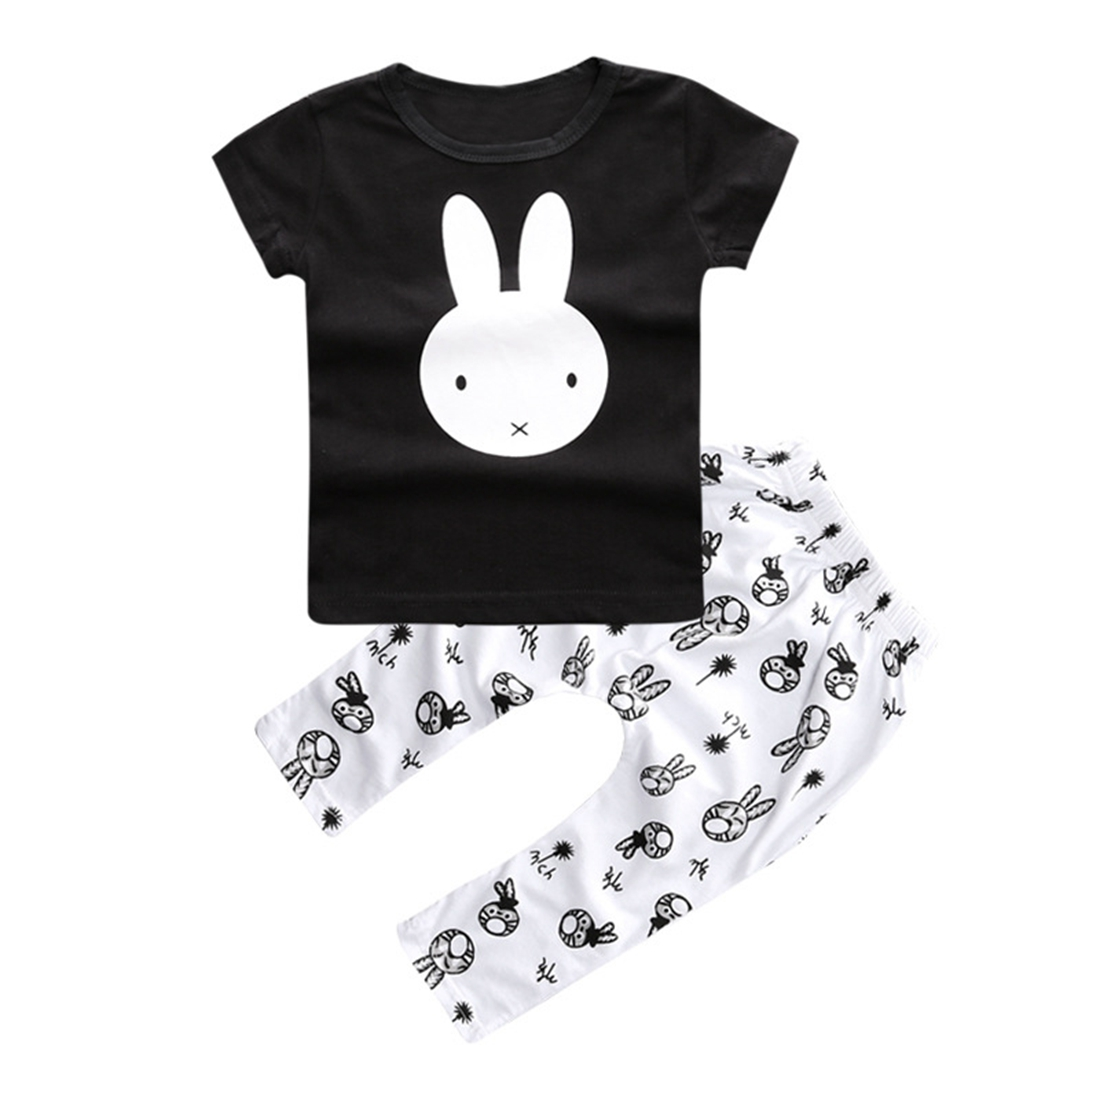 MACH Cute Bunny Infant Baby Boy Girl T-Shirt Pant Outfit Set Clothes 12-18m